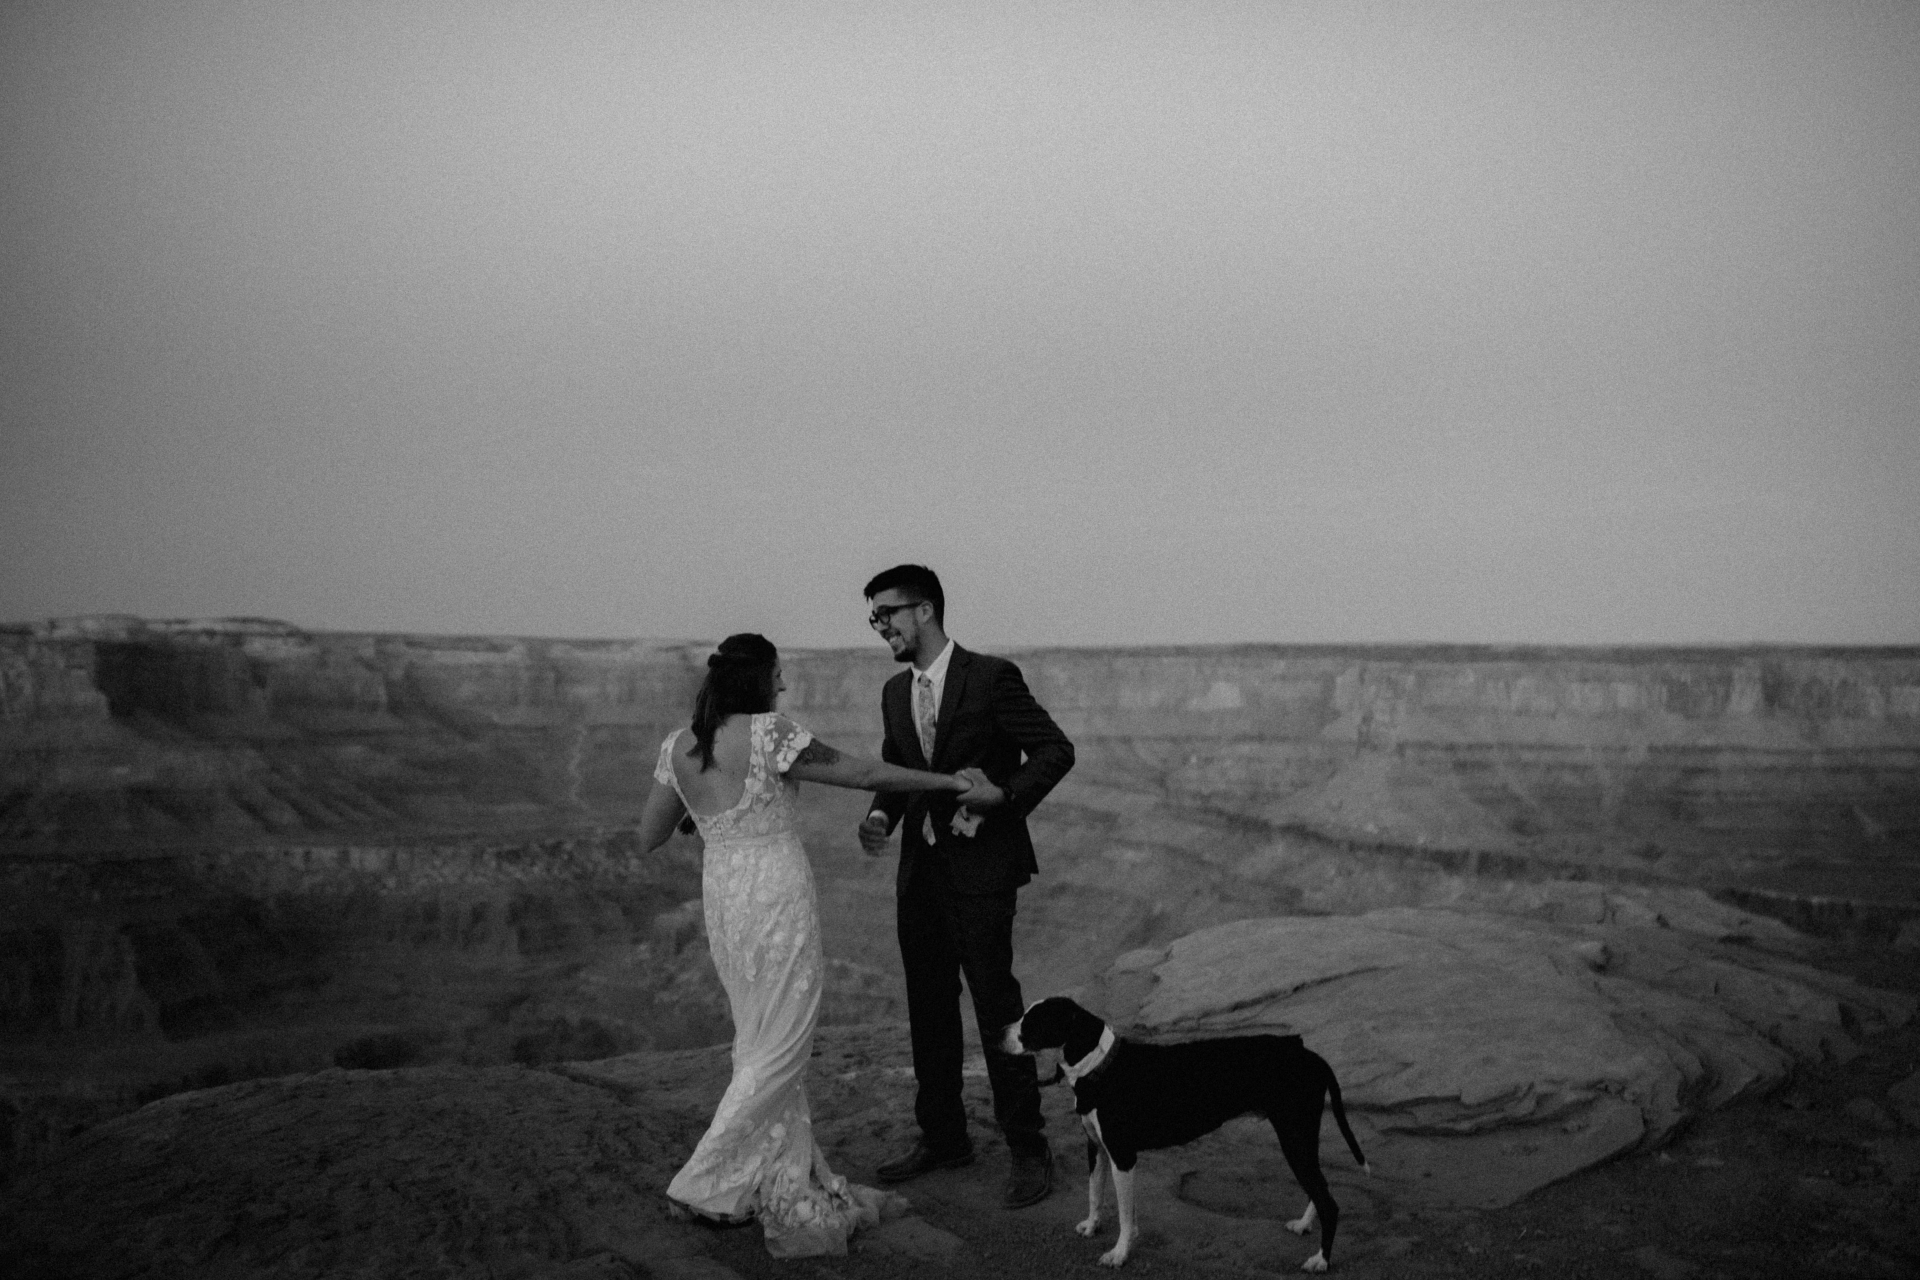 AB1A7343utah-wedding-desert-roadtrip-elopementphotographer-whiskeysage